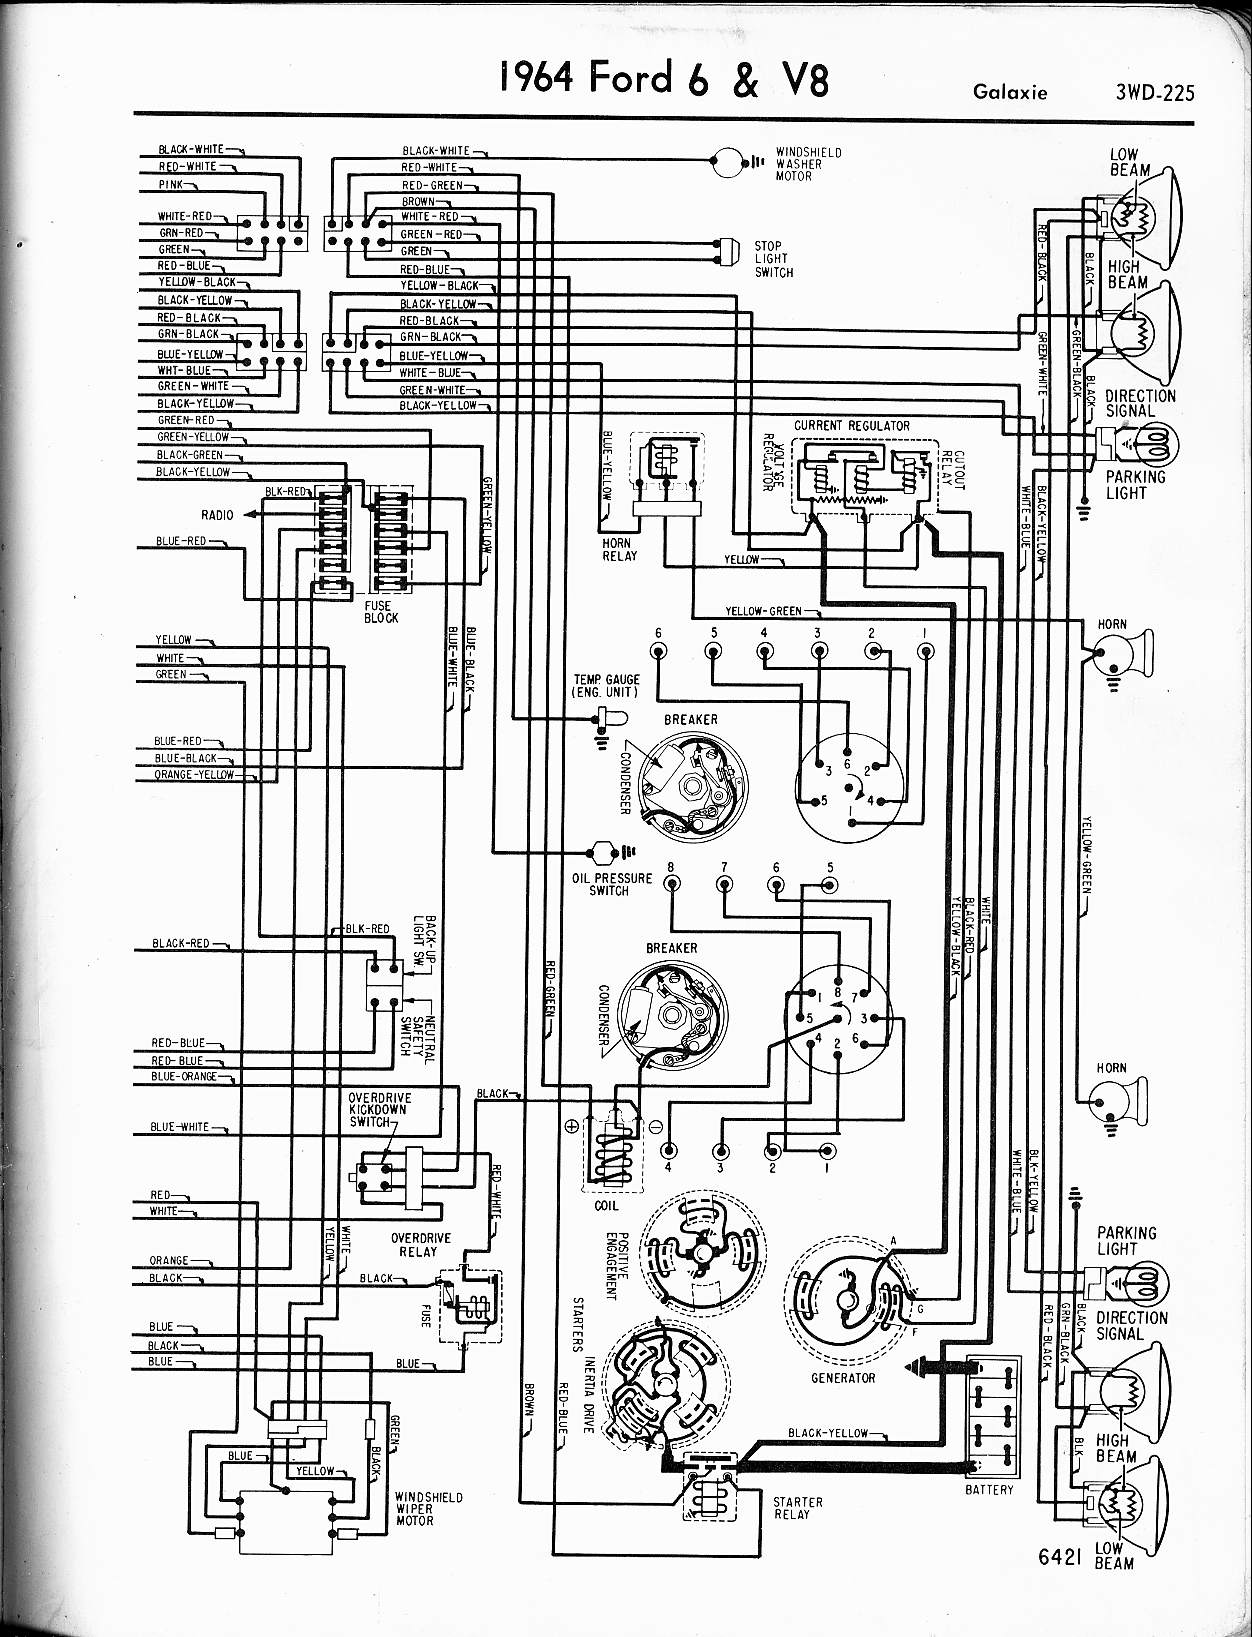 MWire5765 225 57 65 ford wiring diagrams 2000 ford econoline van wiring diagram at mifinder.co